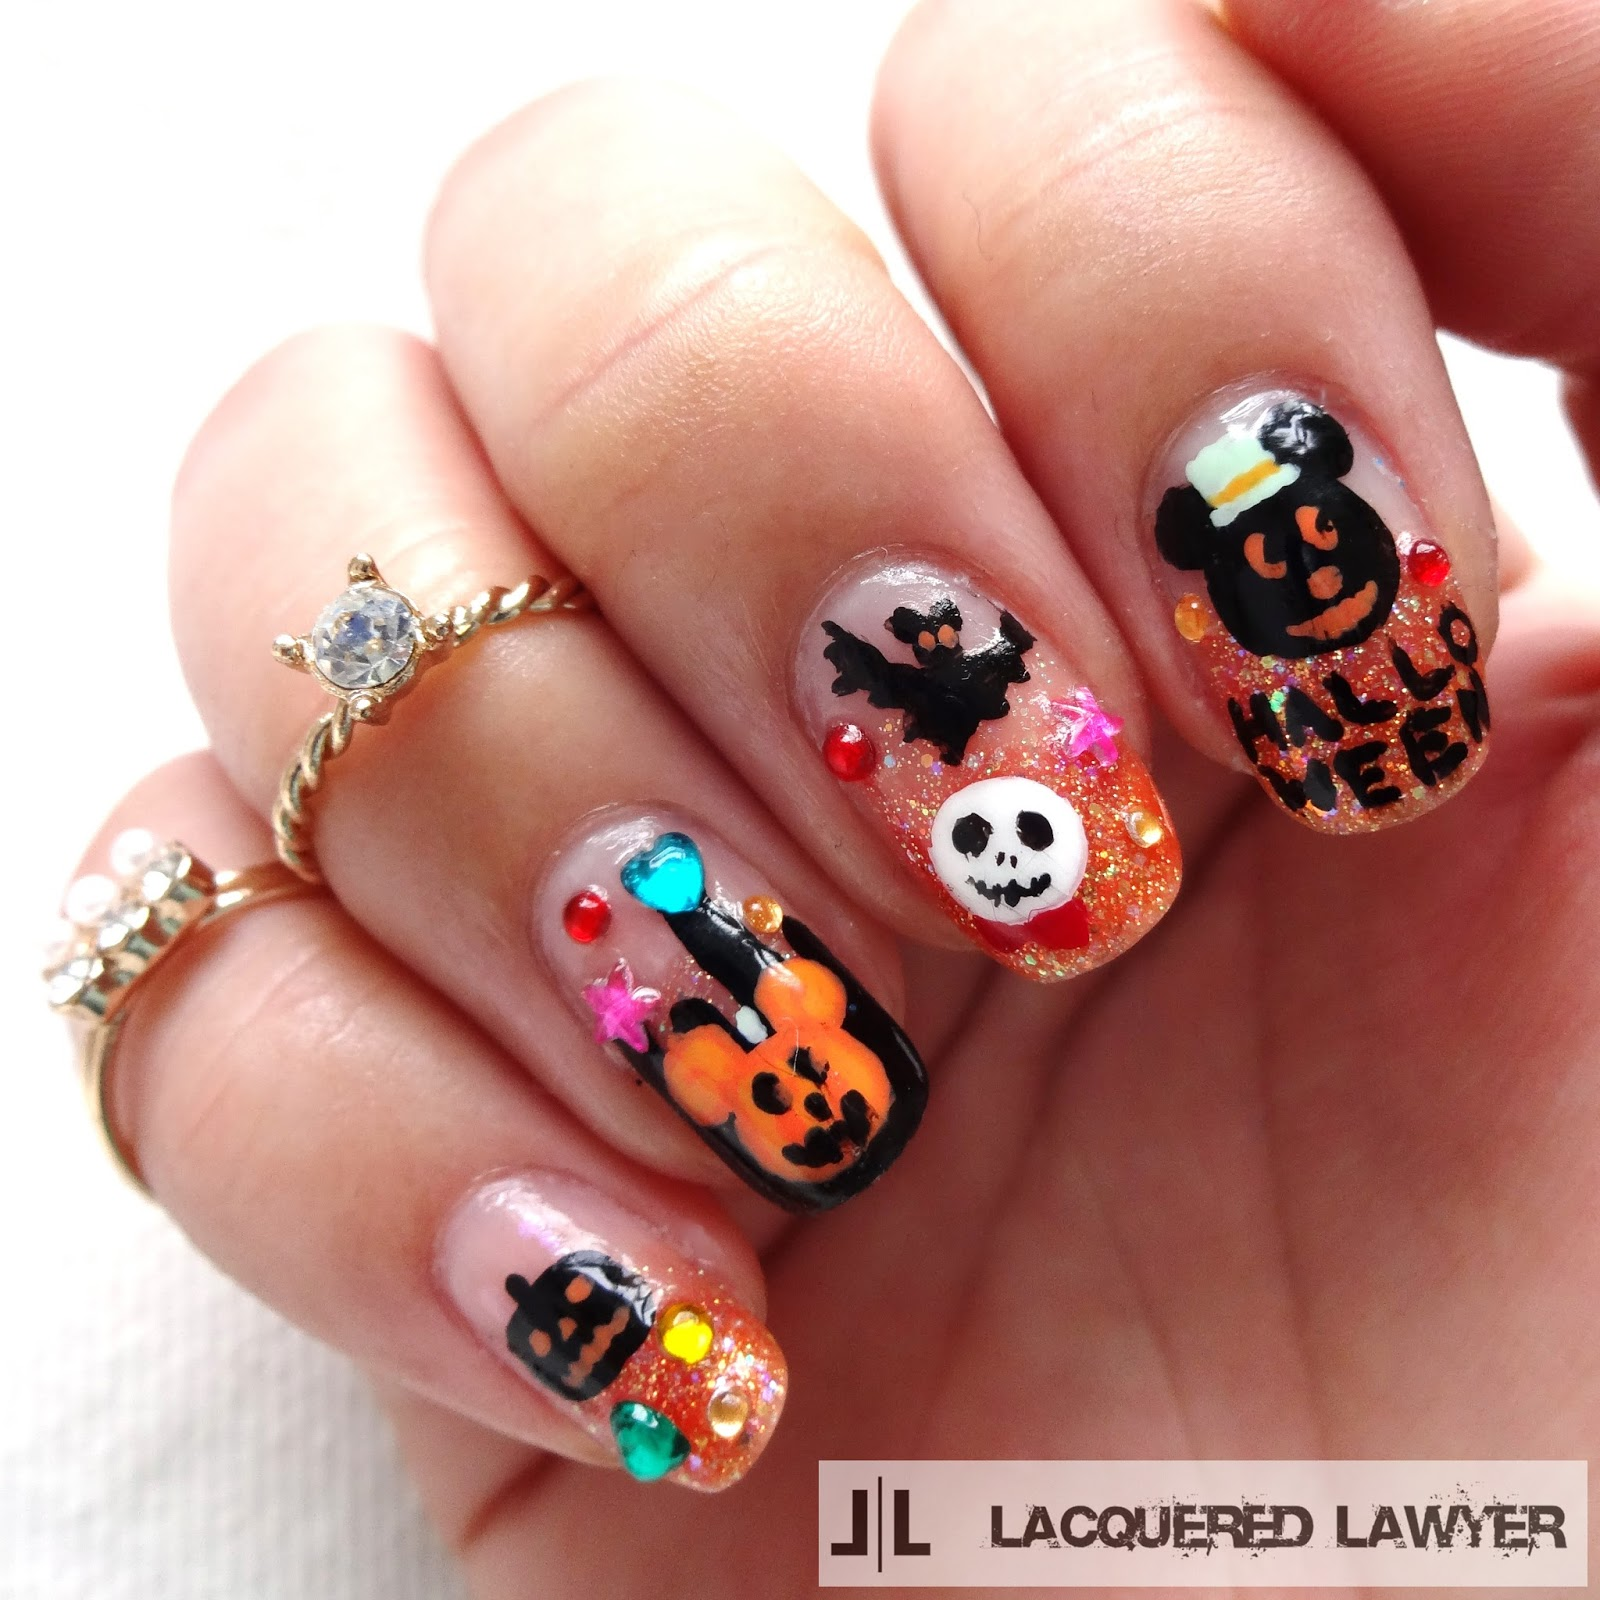 Lacquered Lawyer | Nail Art Blog: Disney Halloween